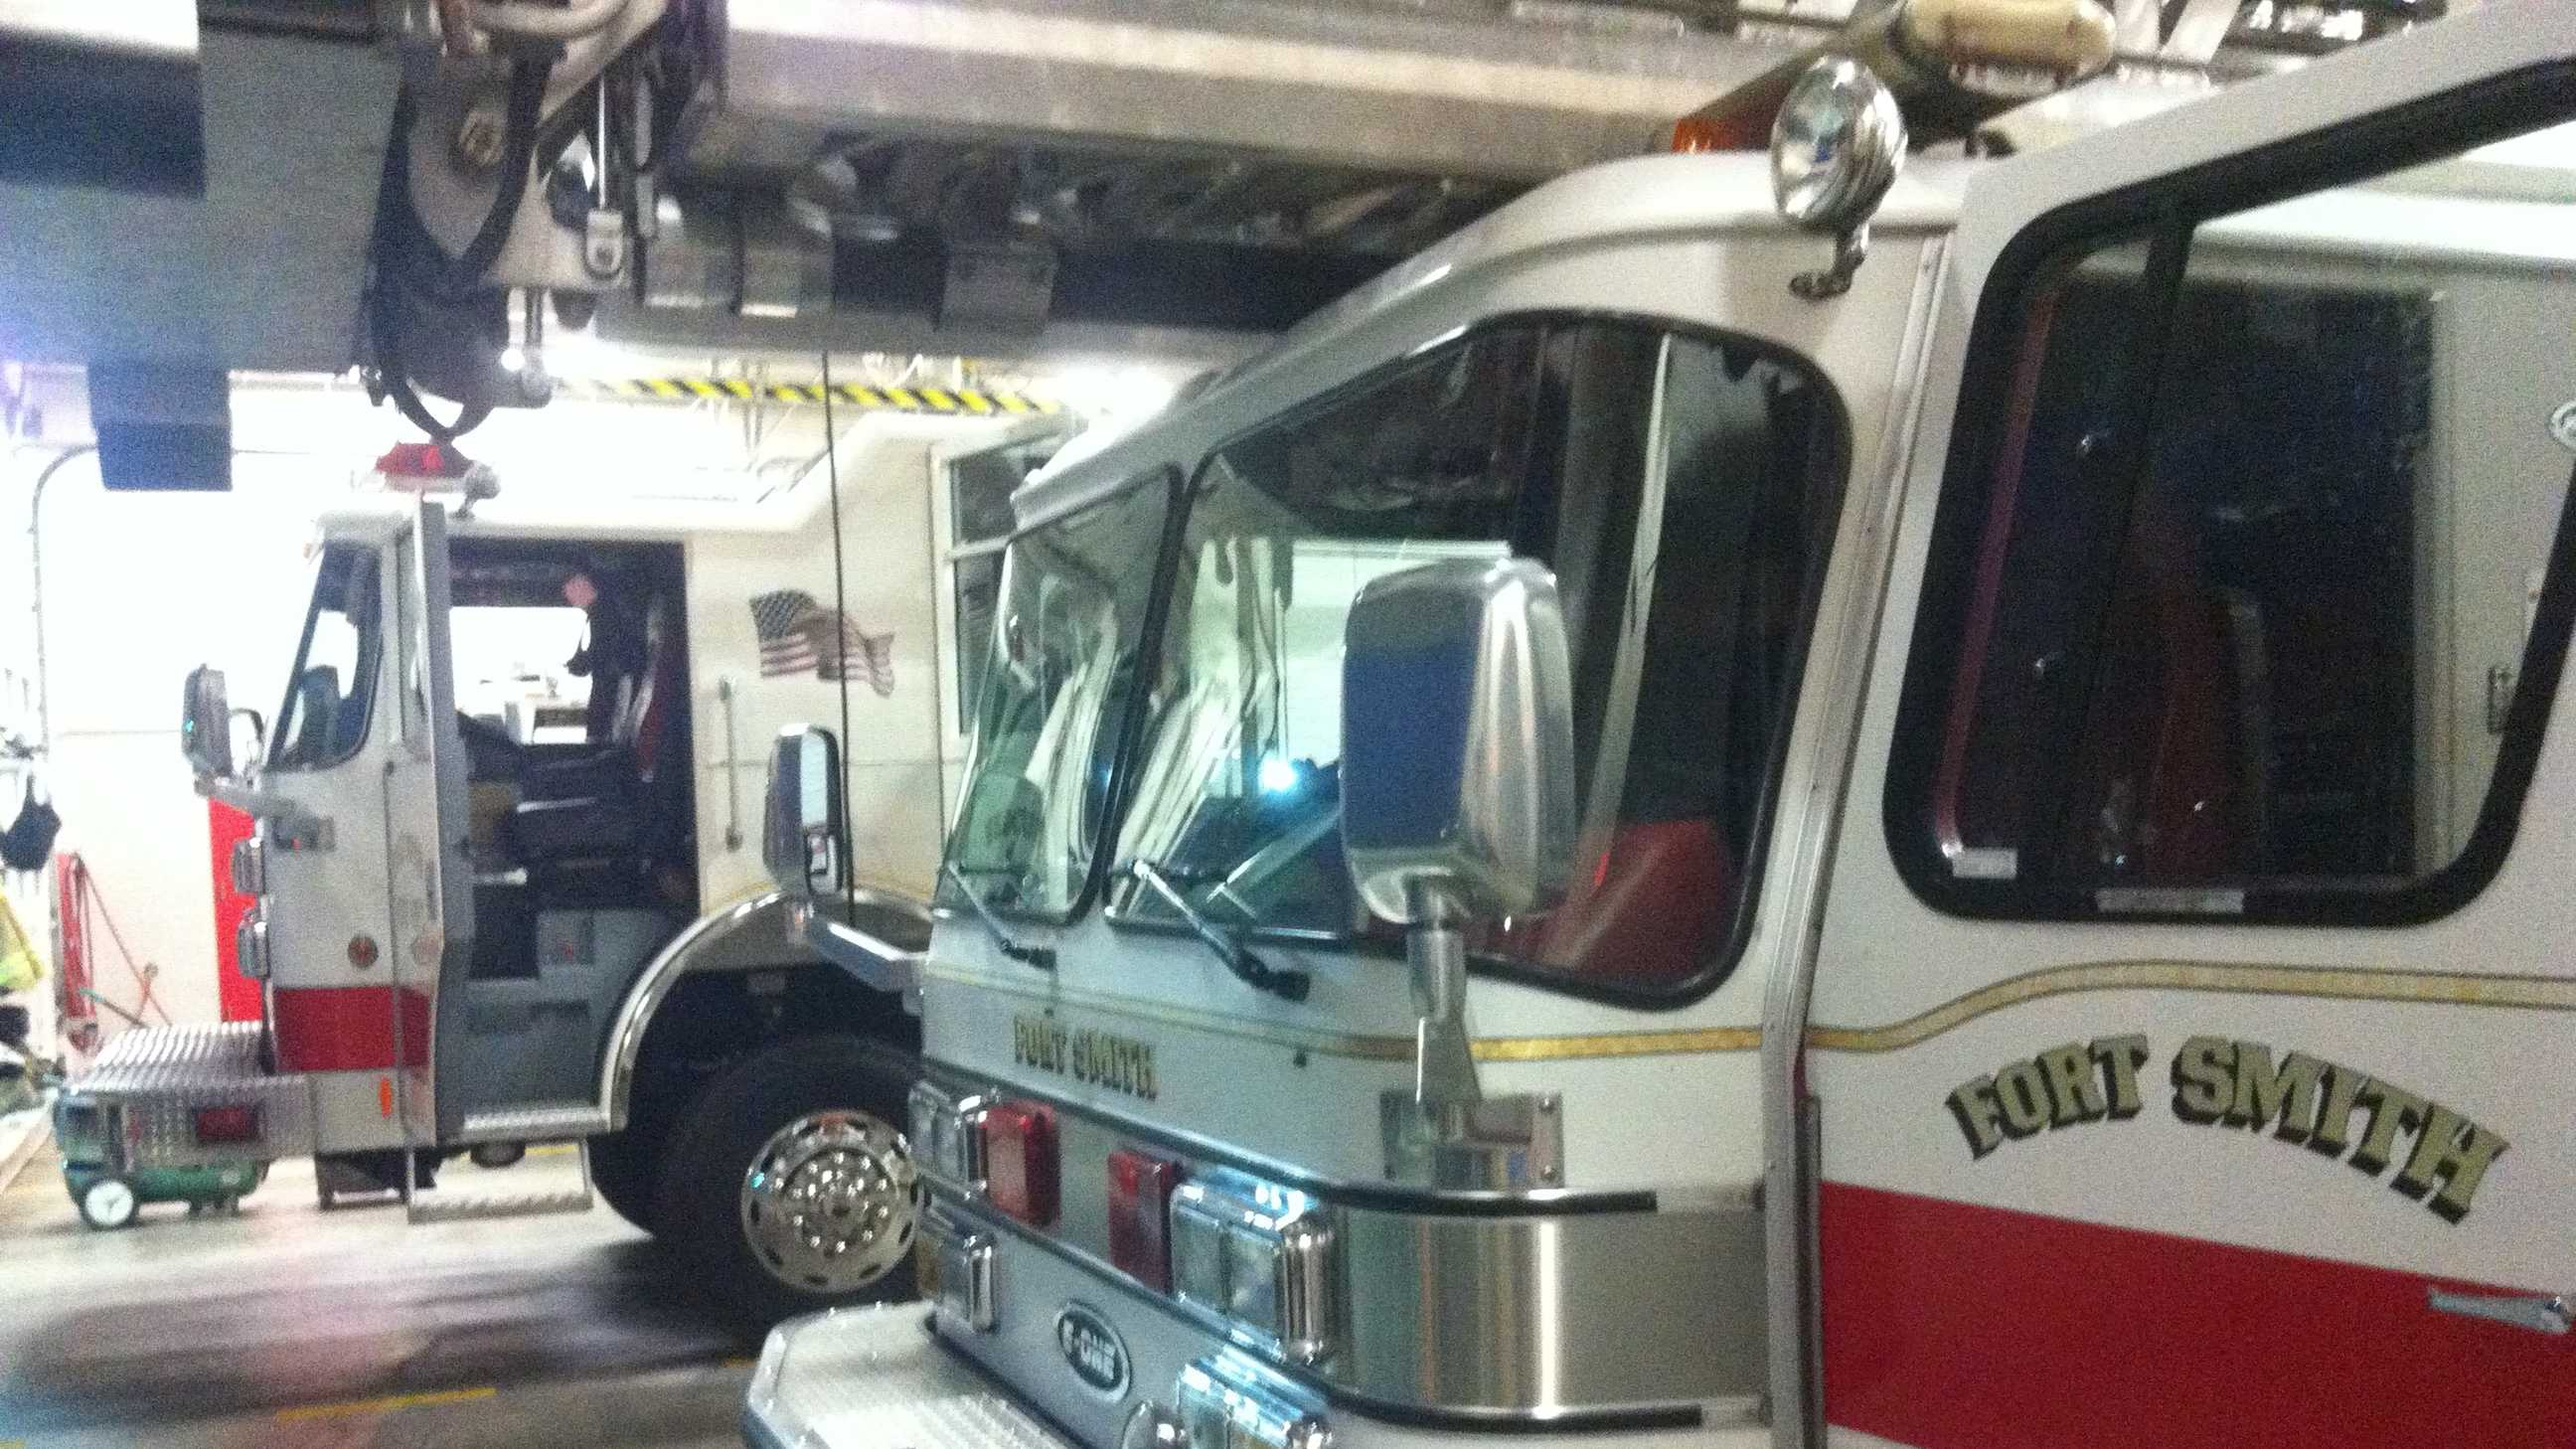 The Fort Smith Fire Department will be getting several new fire vehicles, including three new ladder trucks.